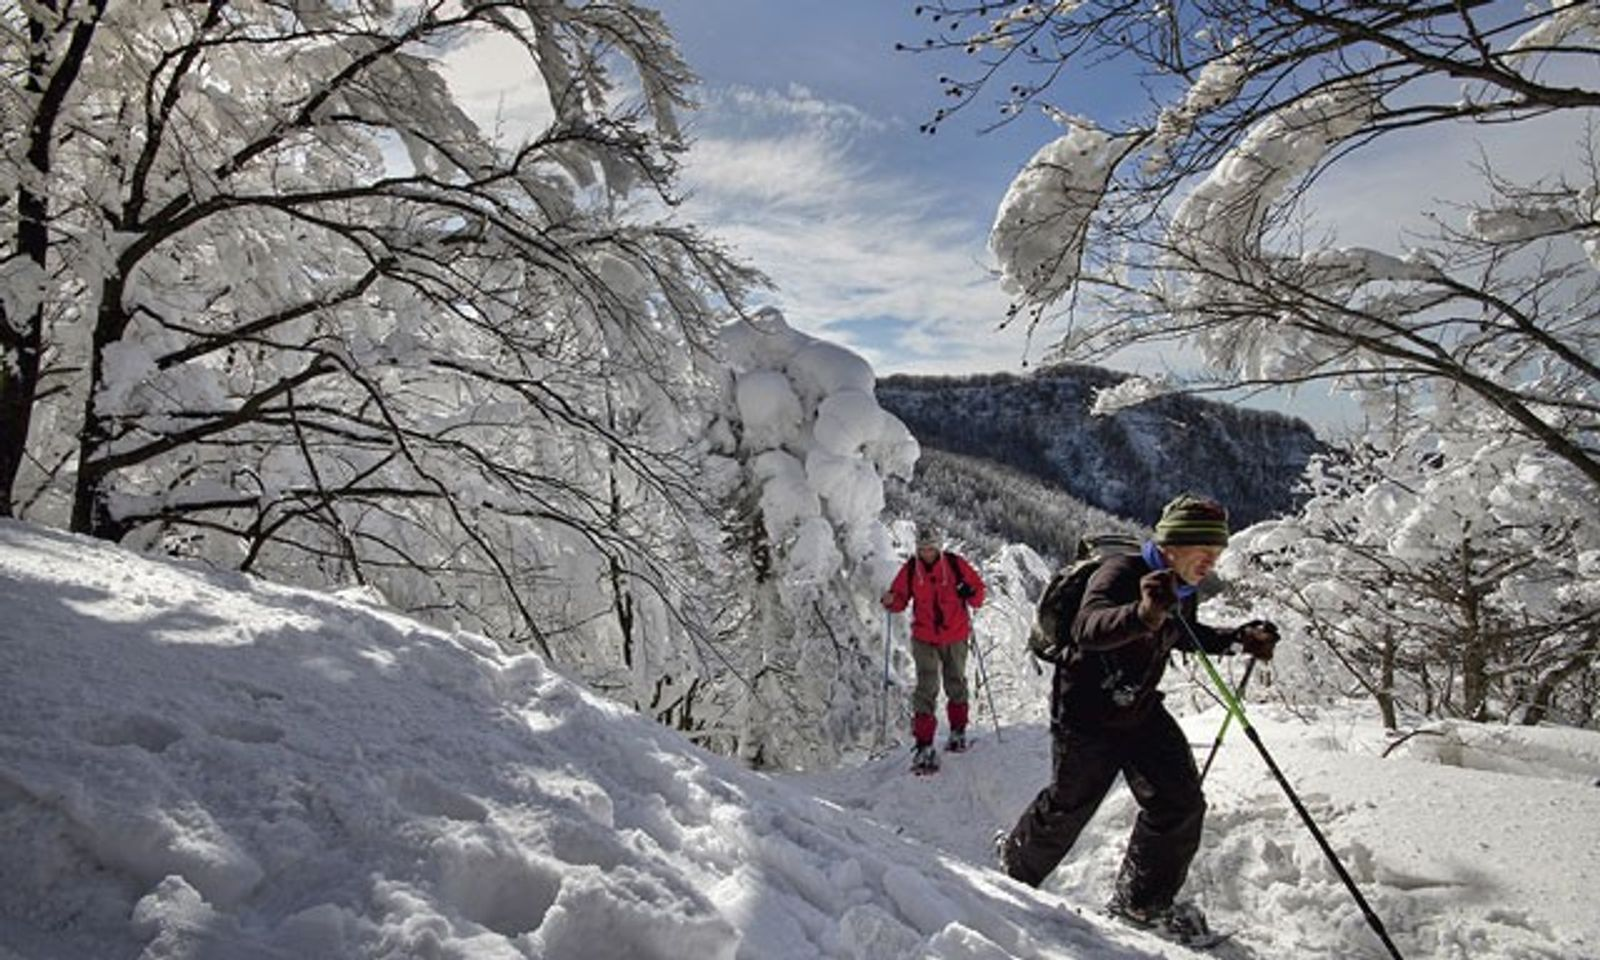 Tuscany's best spots for winter sports